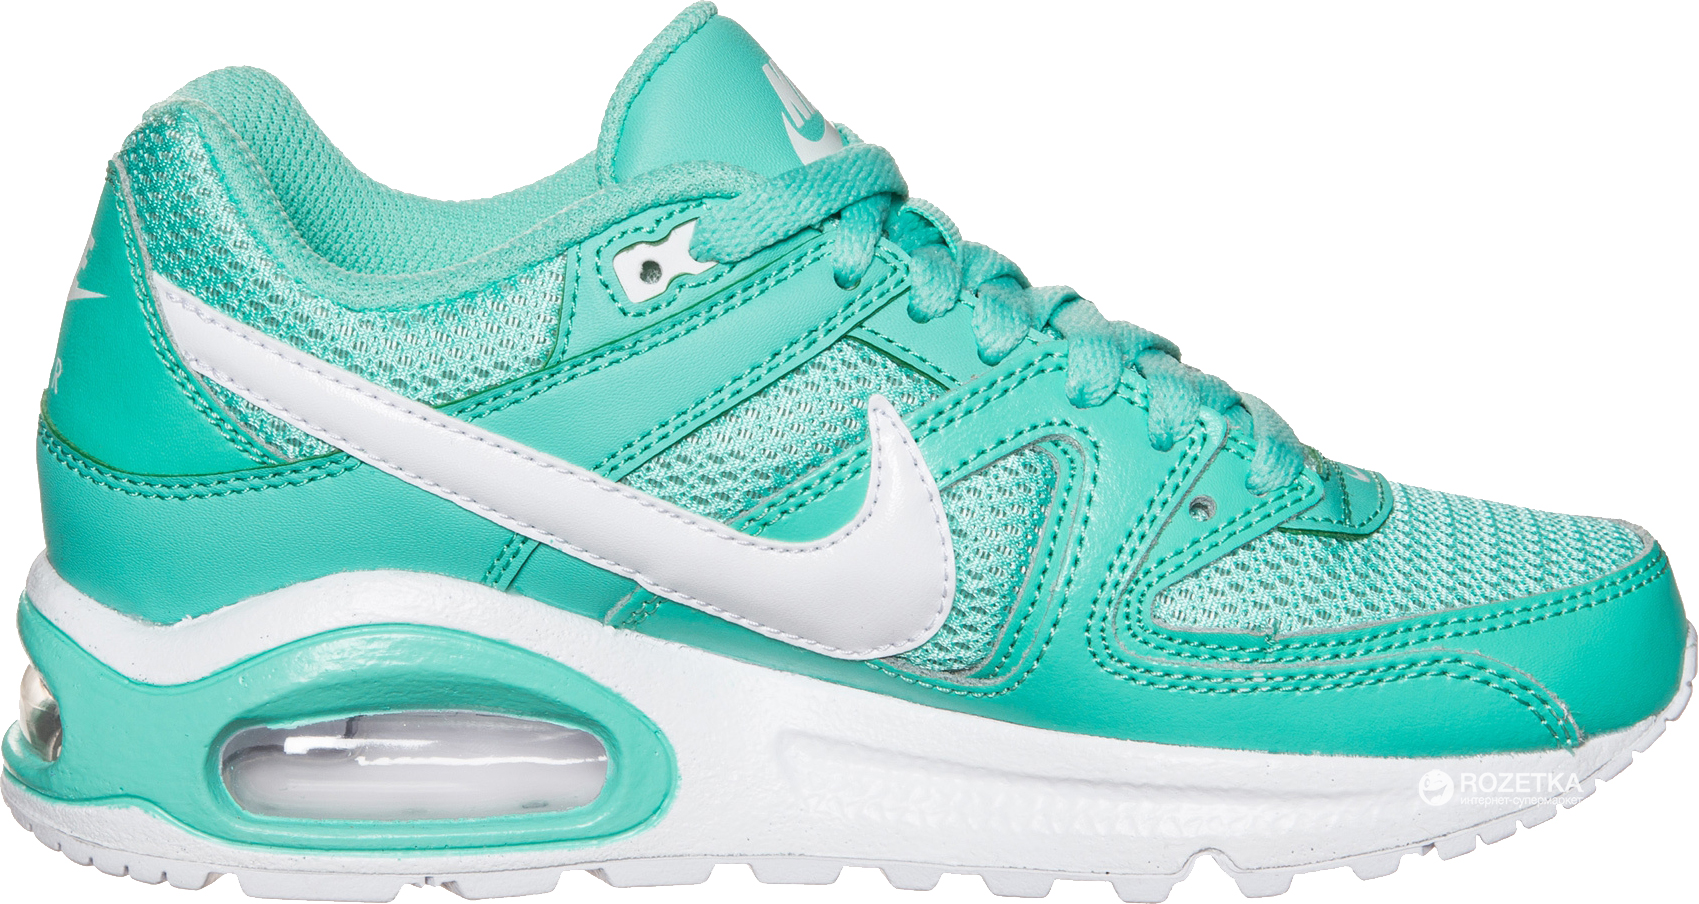 064e6bdabfd6 ... Кроссовки Nike Air Max Command 407626-313 35 (4Y) 23 см new styles  Кроссовки  Nike Wmns ...